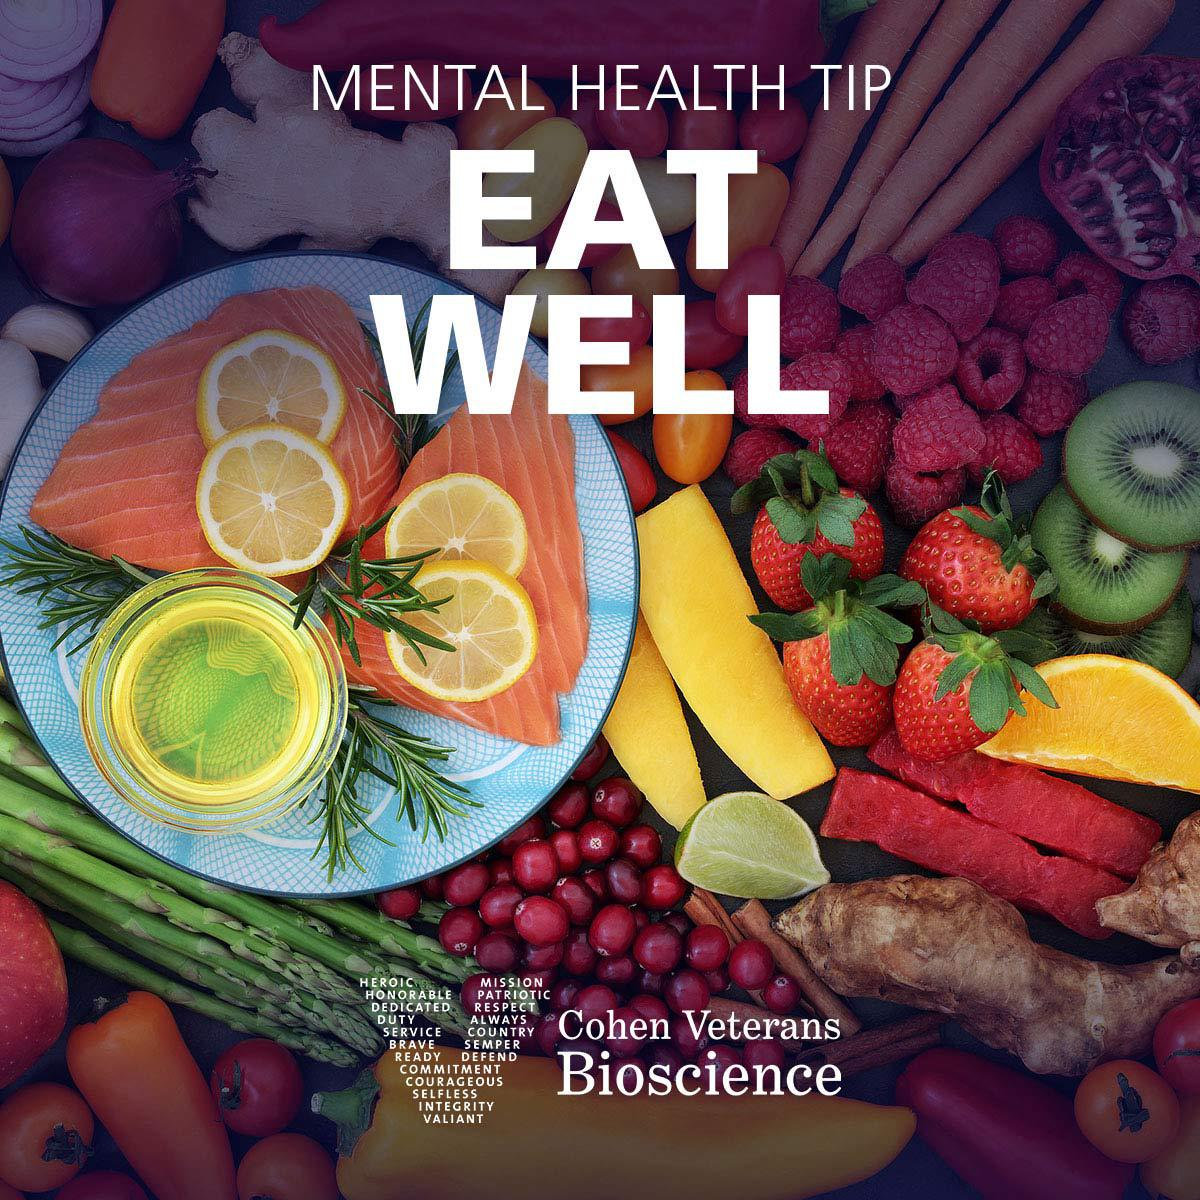 Mental Health Tip: Eat Well